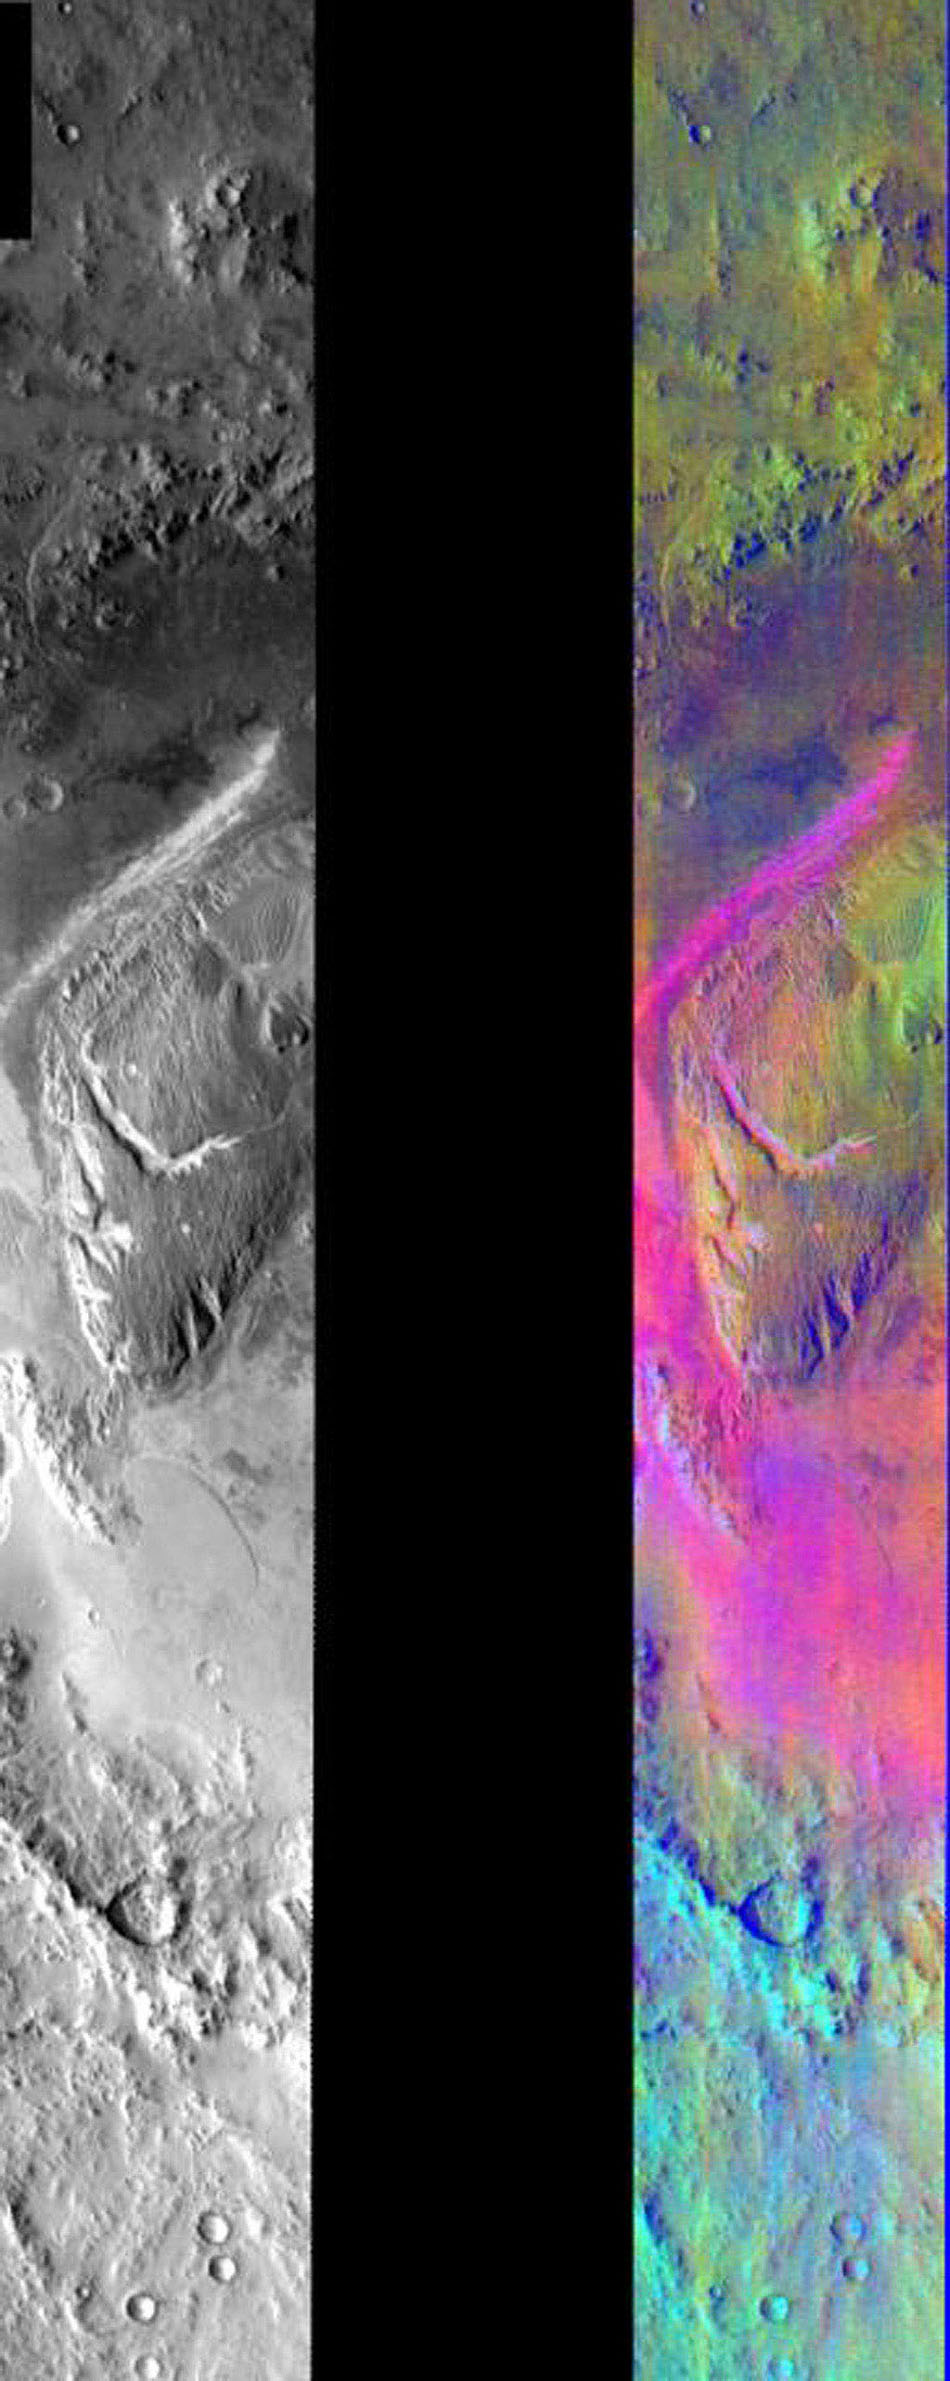 This image released on August 4, 2004 from NASA's 2001 Mars Odyssey shows a decorrelation stretch in Gale Crater. Pink/magenta colors usually represent basaltic dunes, cyan indicates the presence of water ice clouds, while green can represent dust.